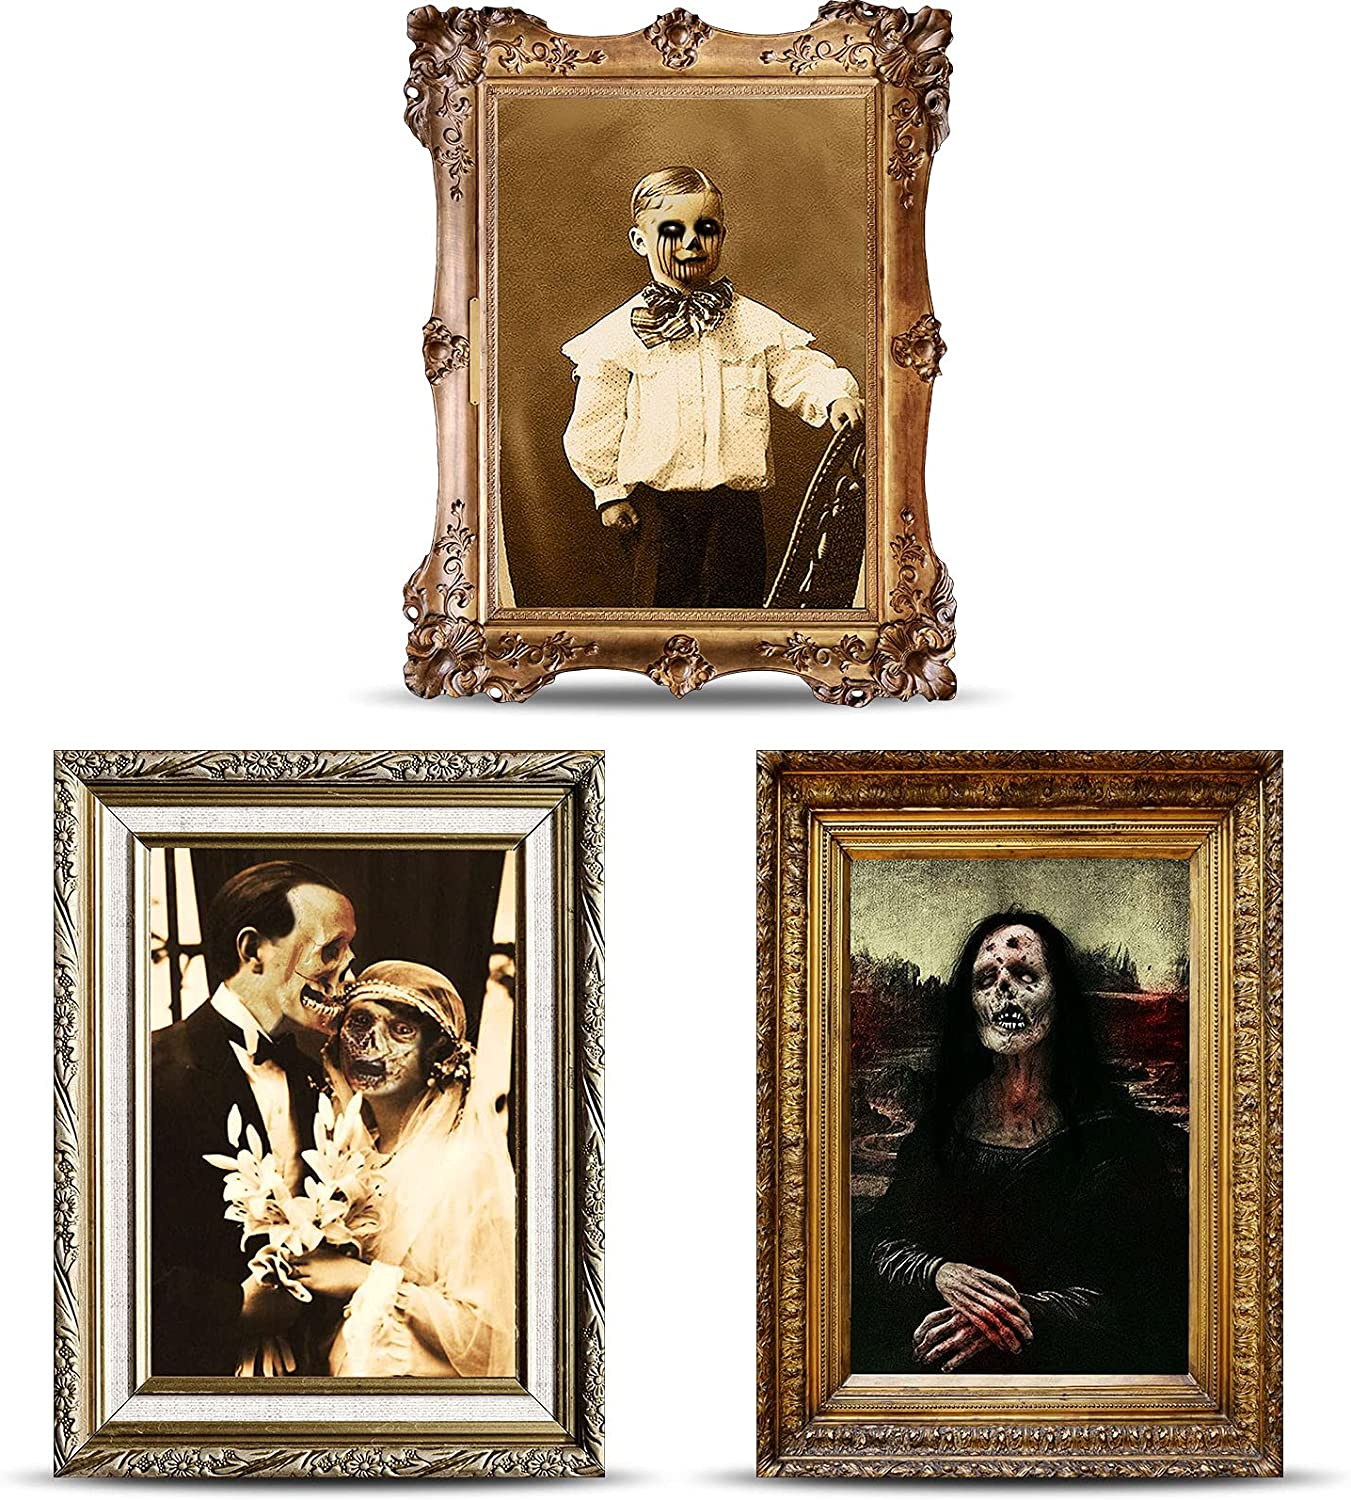 Halloween Decorations 3D Changing Face Horror Pictures Moving Portrait Haunted Pictures Gothic Mansion Portraits Tabletop Picture Frame Scary Wall Decoration for Halloween Party House (Classic,3 PCS)